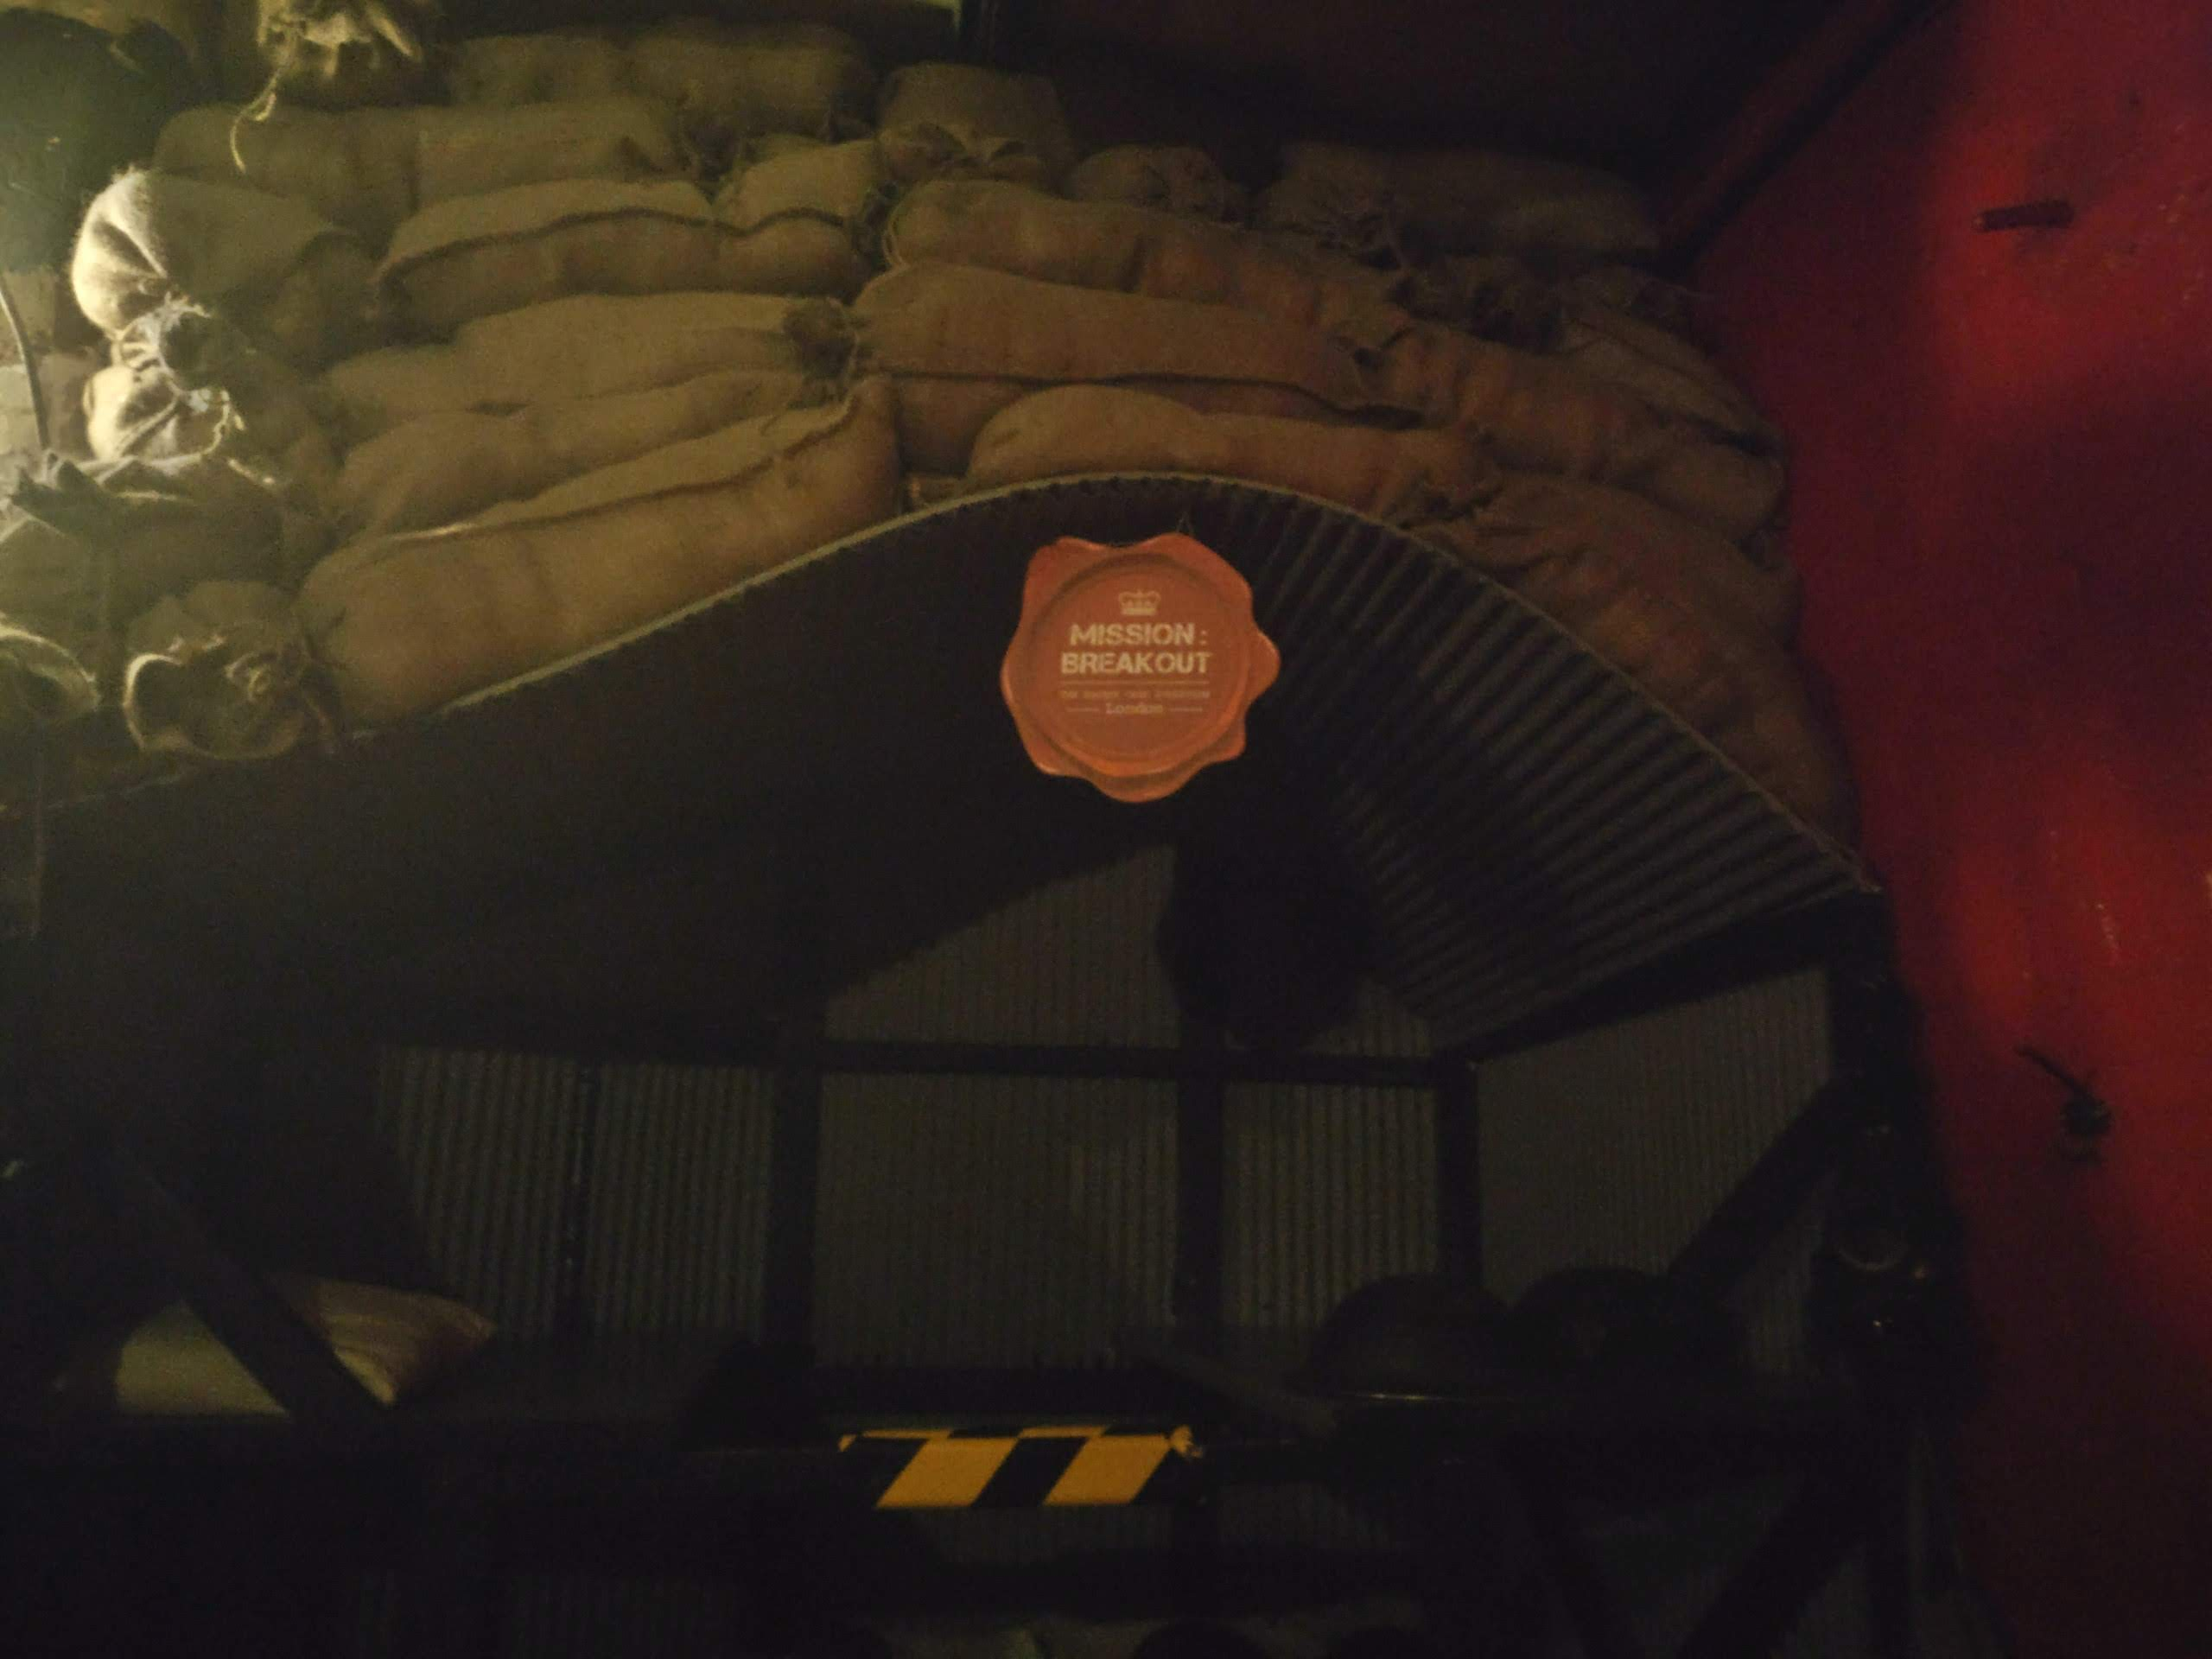 A bunker set up in the lobby area